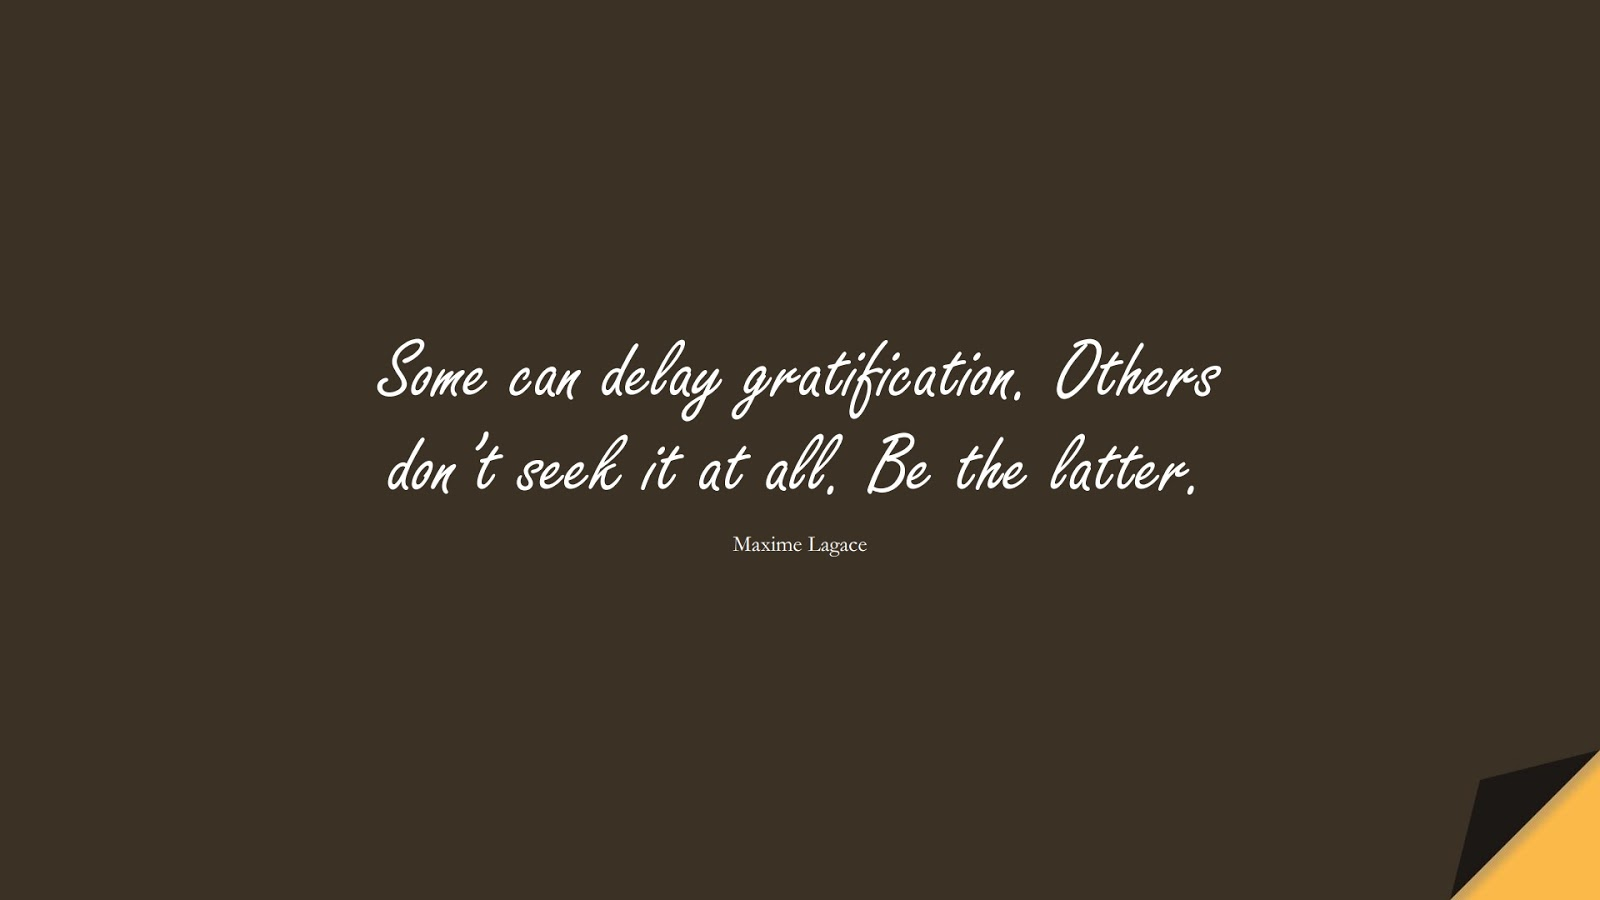 Some can delay gratification. Others don't seek it at all. Be the latter. (Maxime Lagace);  #StoicQuotes